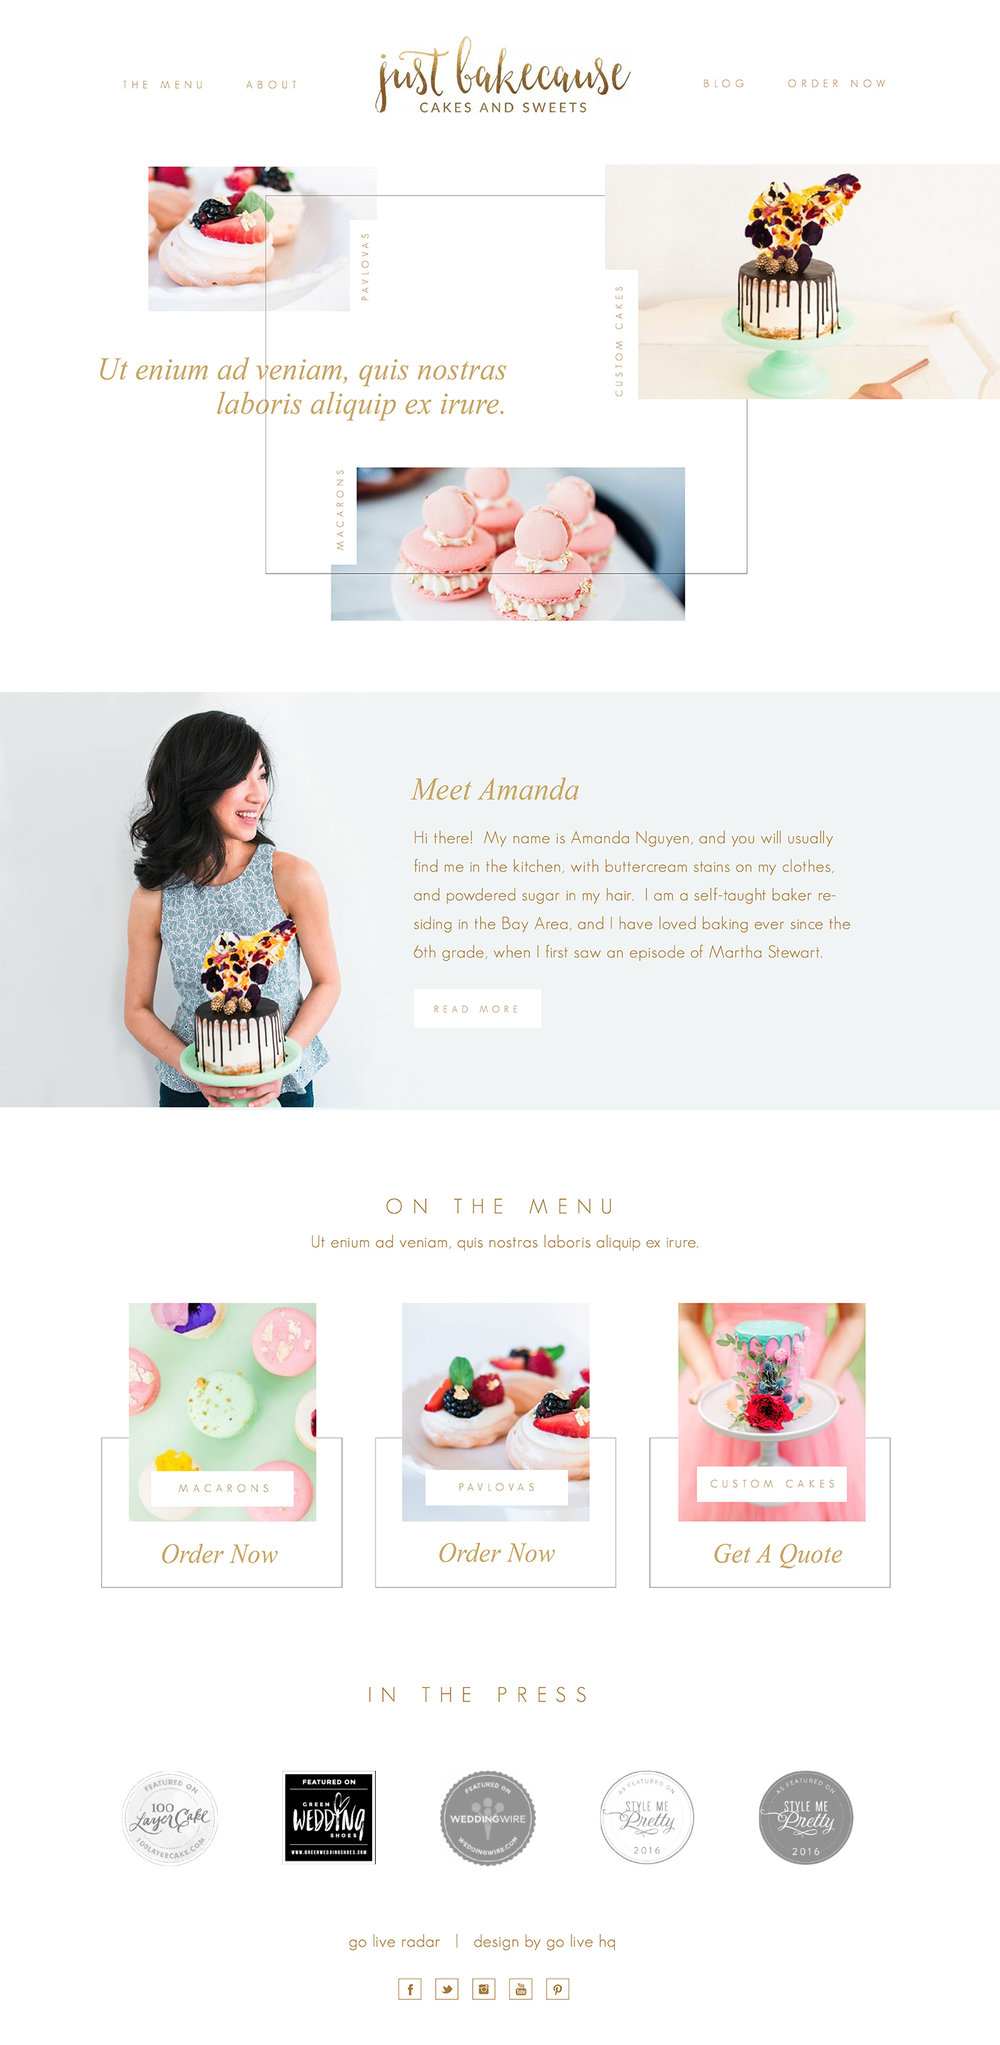 moderen bakery website by go live hq